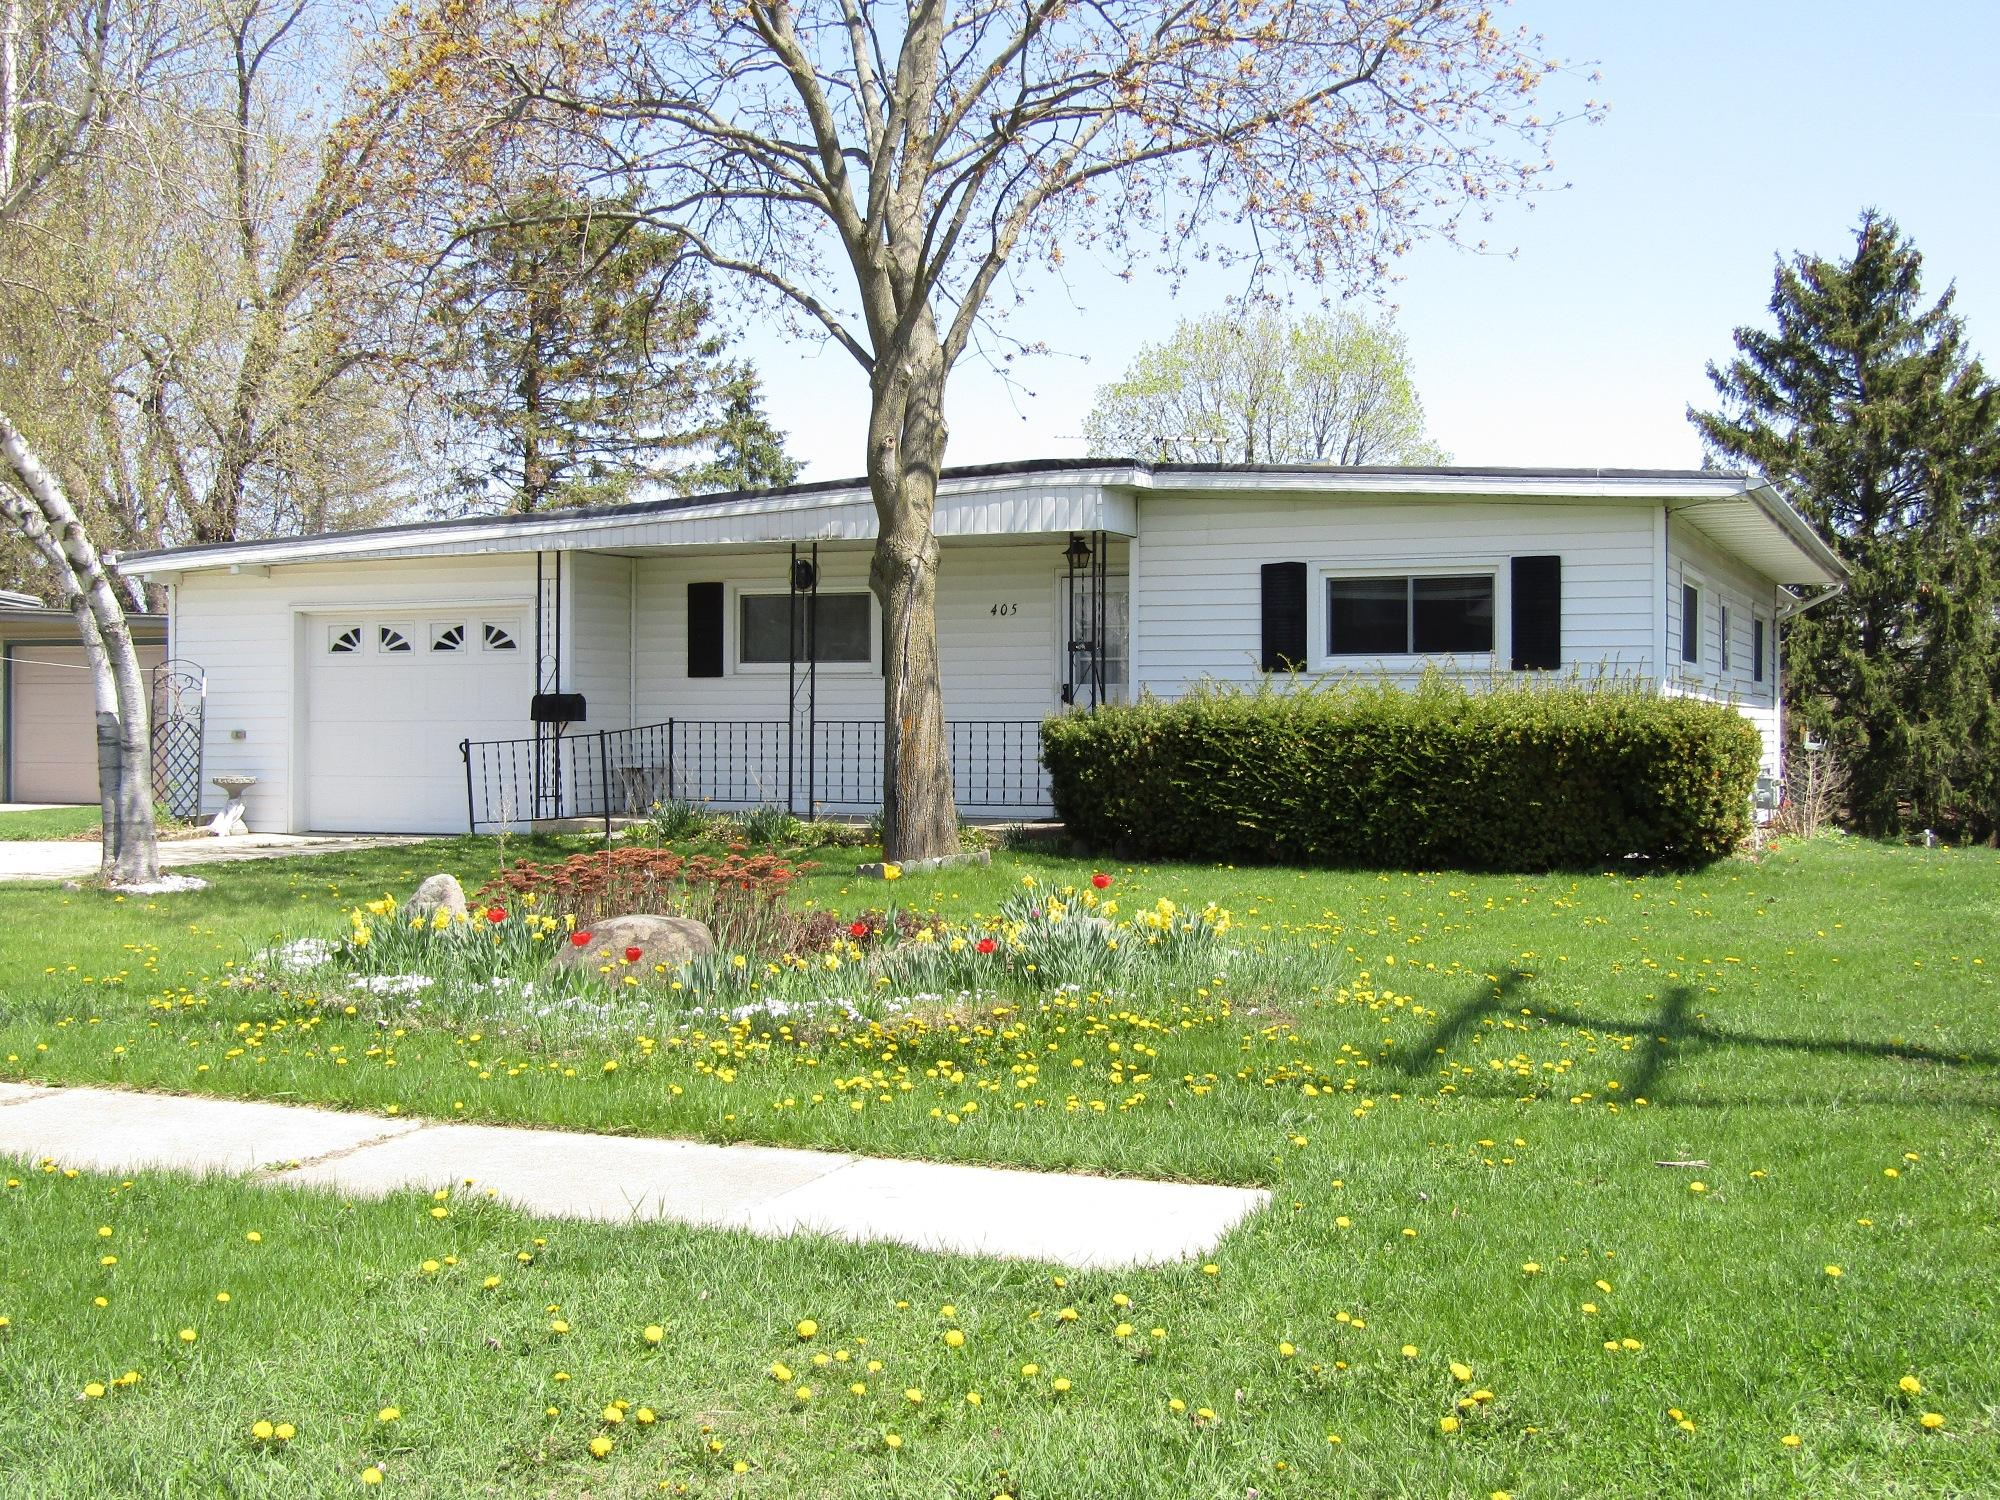 Prime 405 S Concord Ave Watertown Wi 53094 Sold Listing Mls 1606529 Keefe Real Estate Beutiful Home Inspiration Ommitmahrainfo